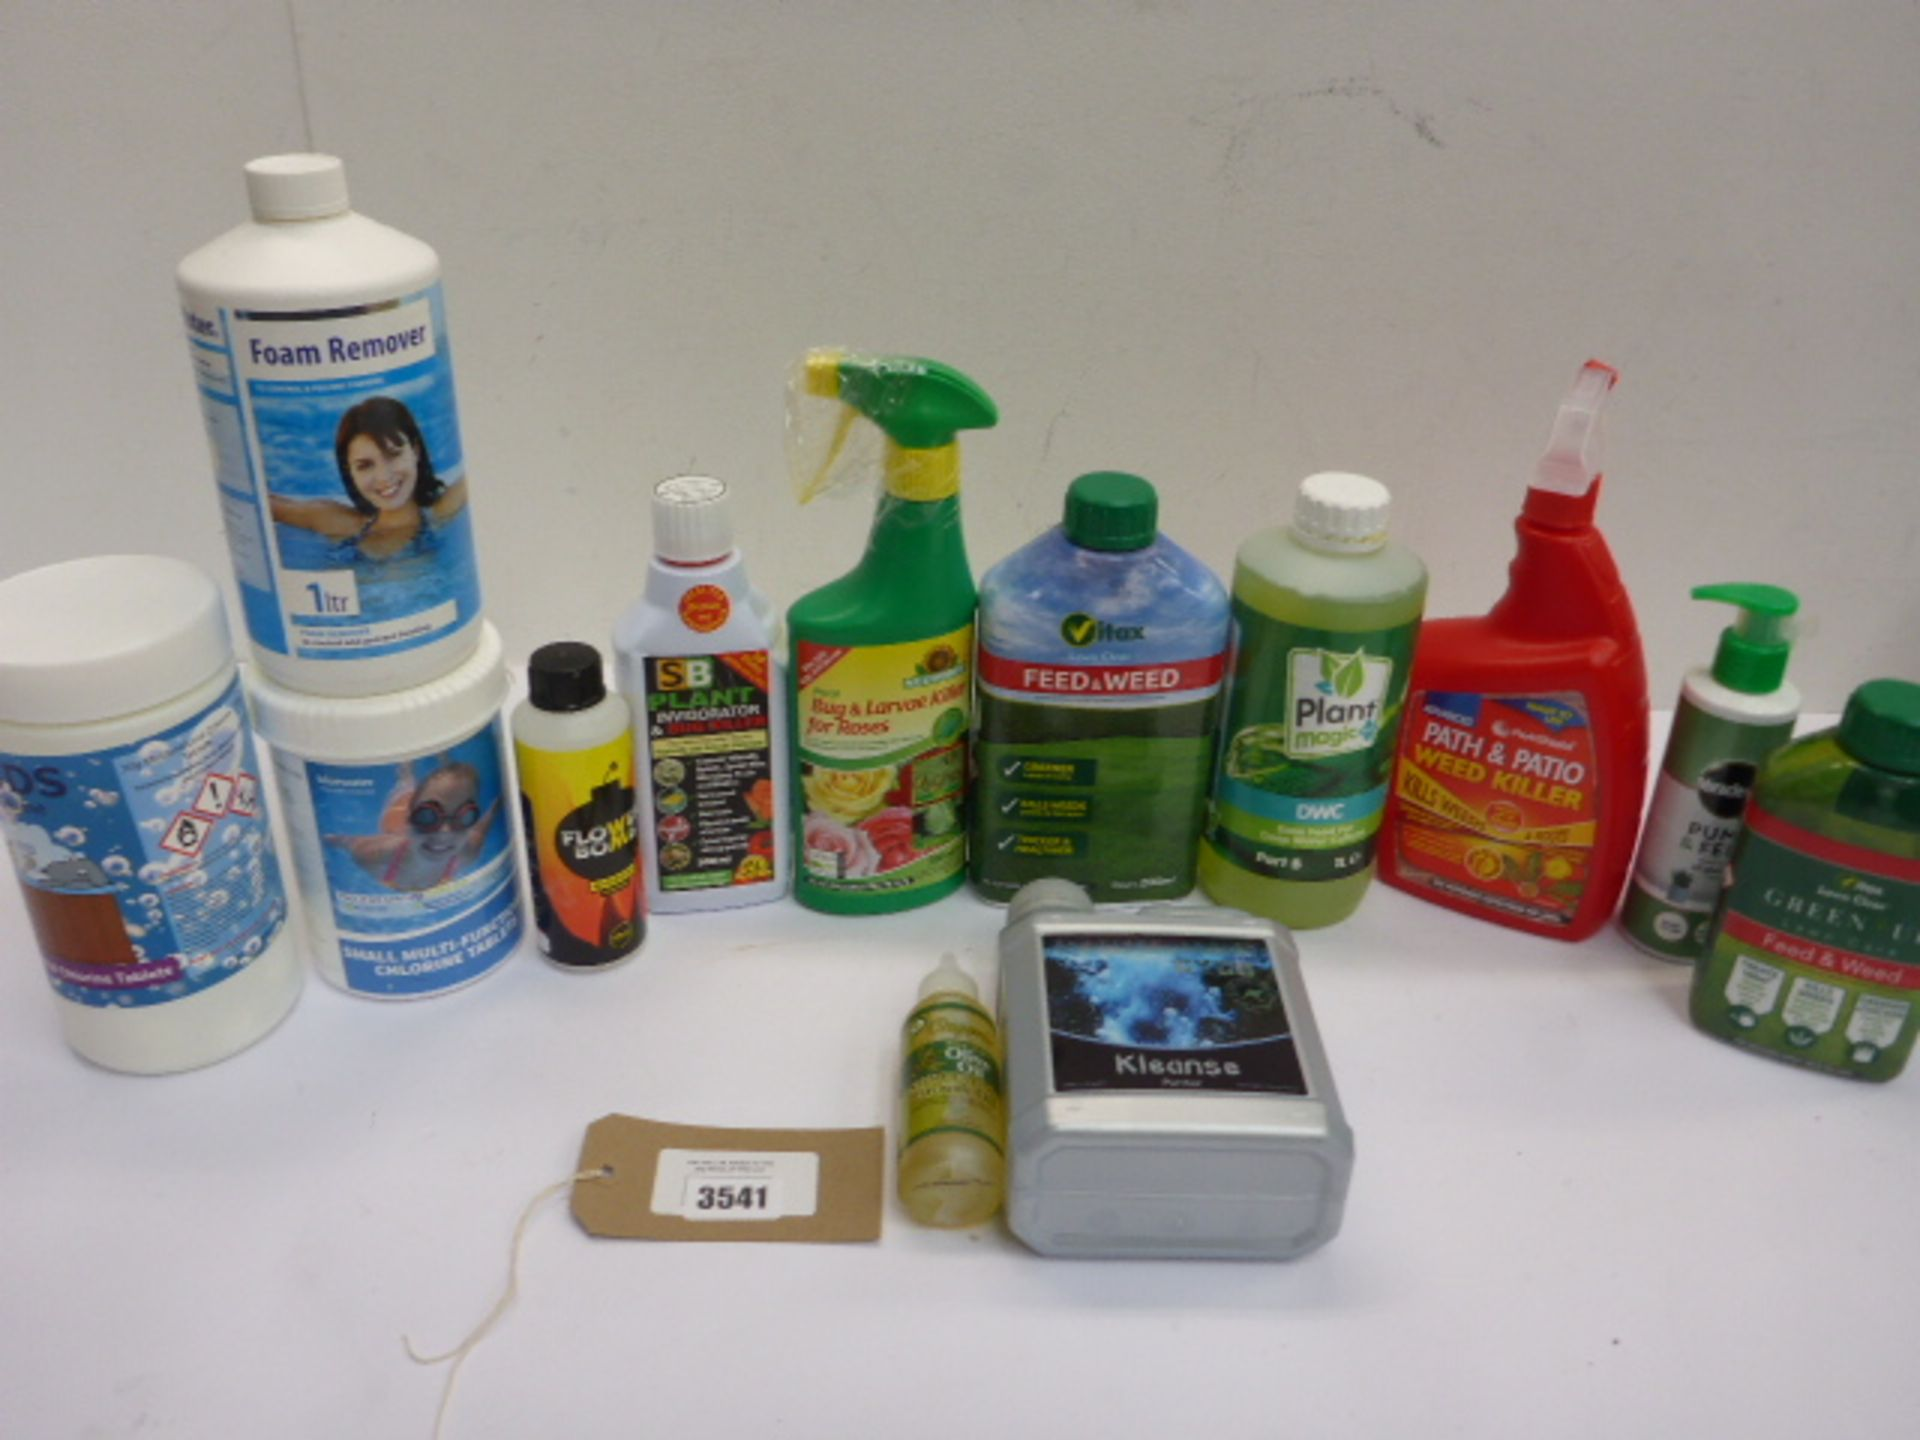 Lot 3541 - Chlorine tablets, foam remover, lawn feed, weed killer etc